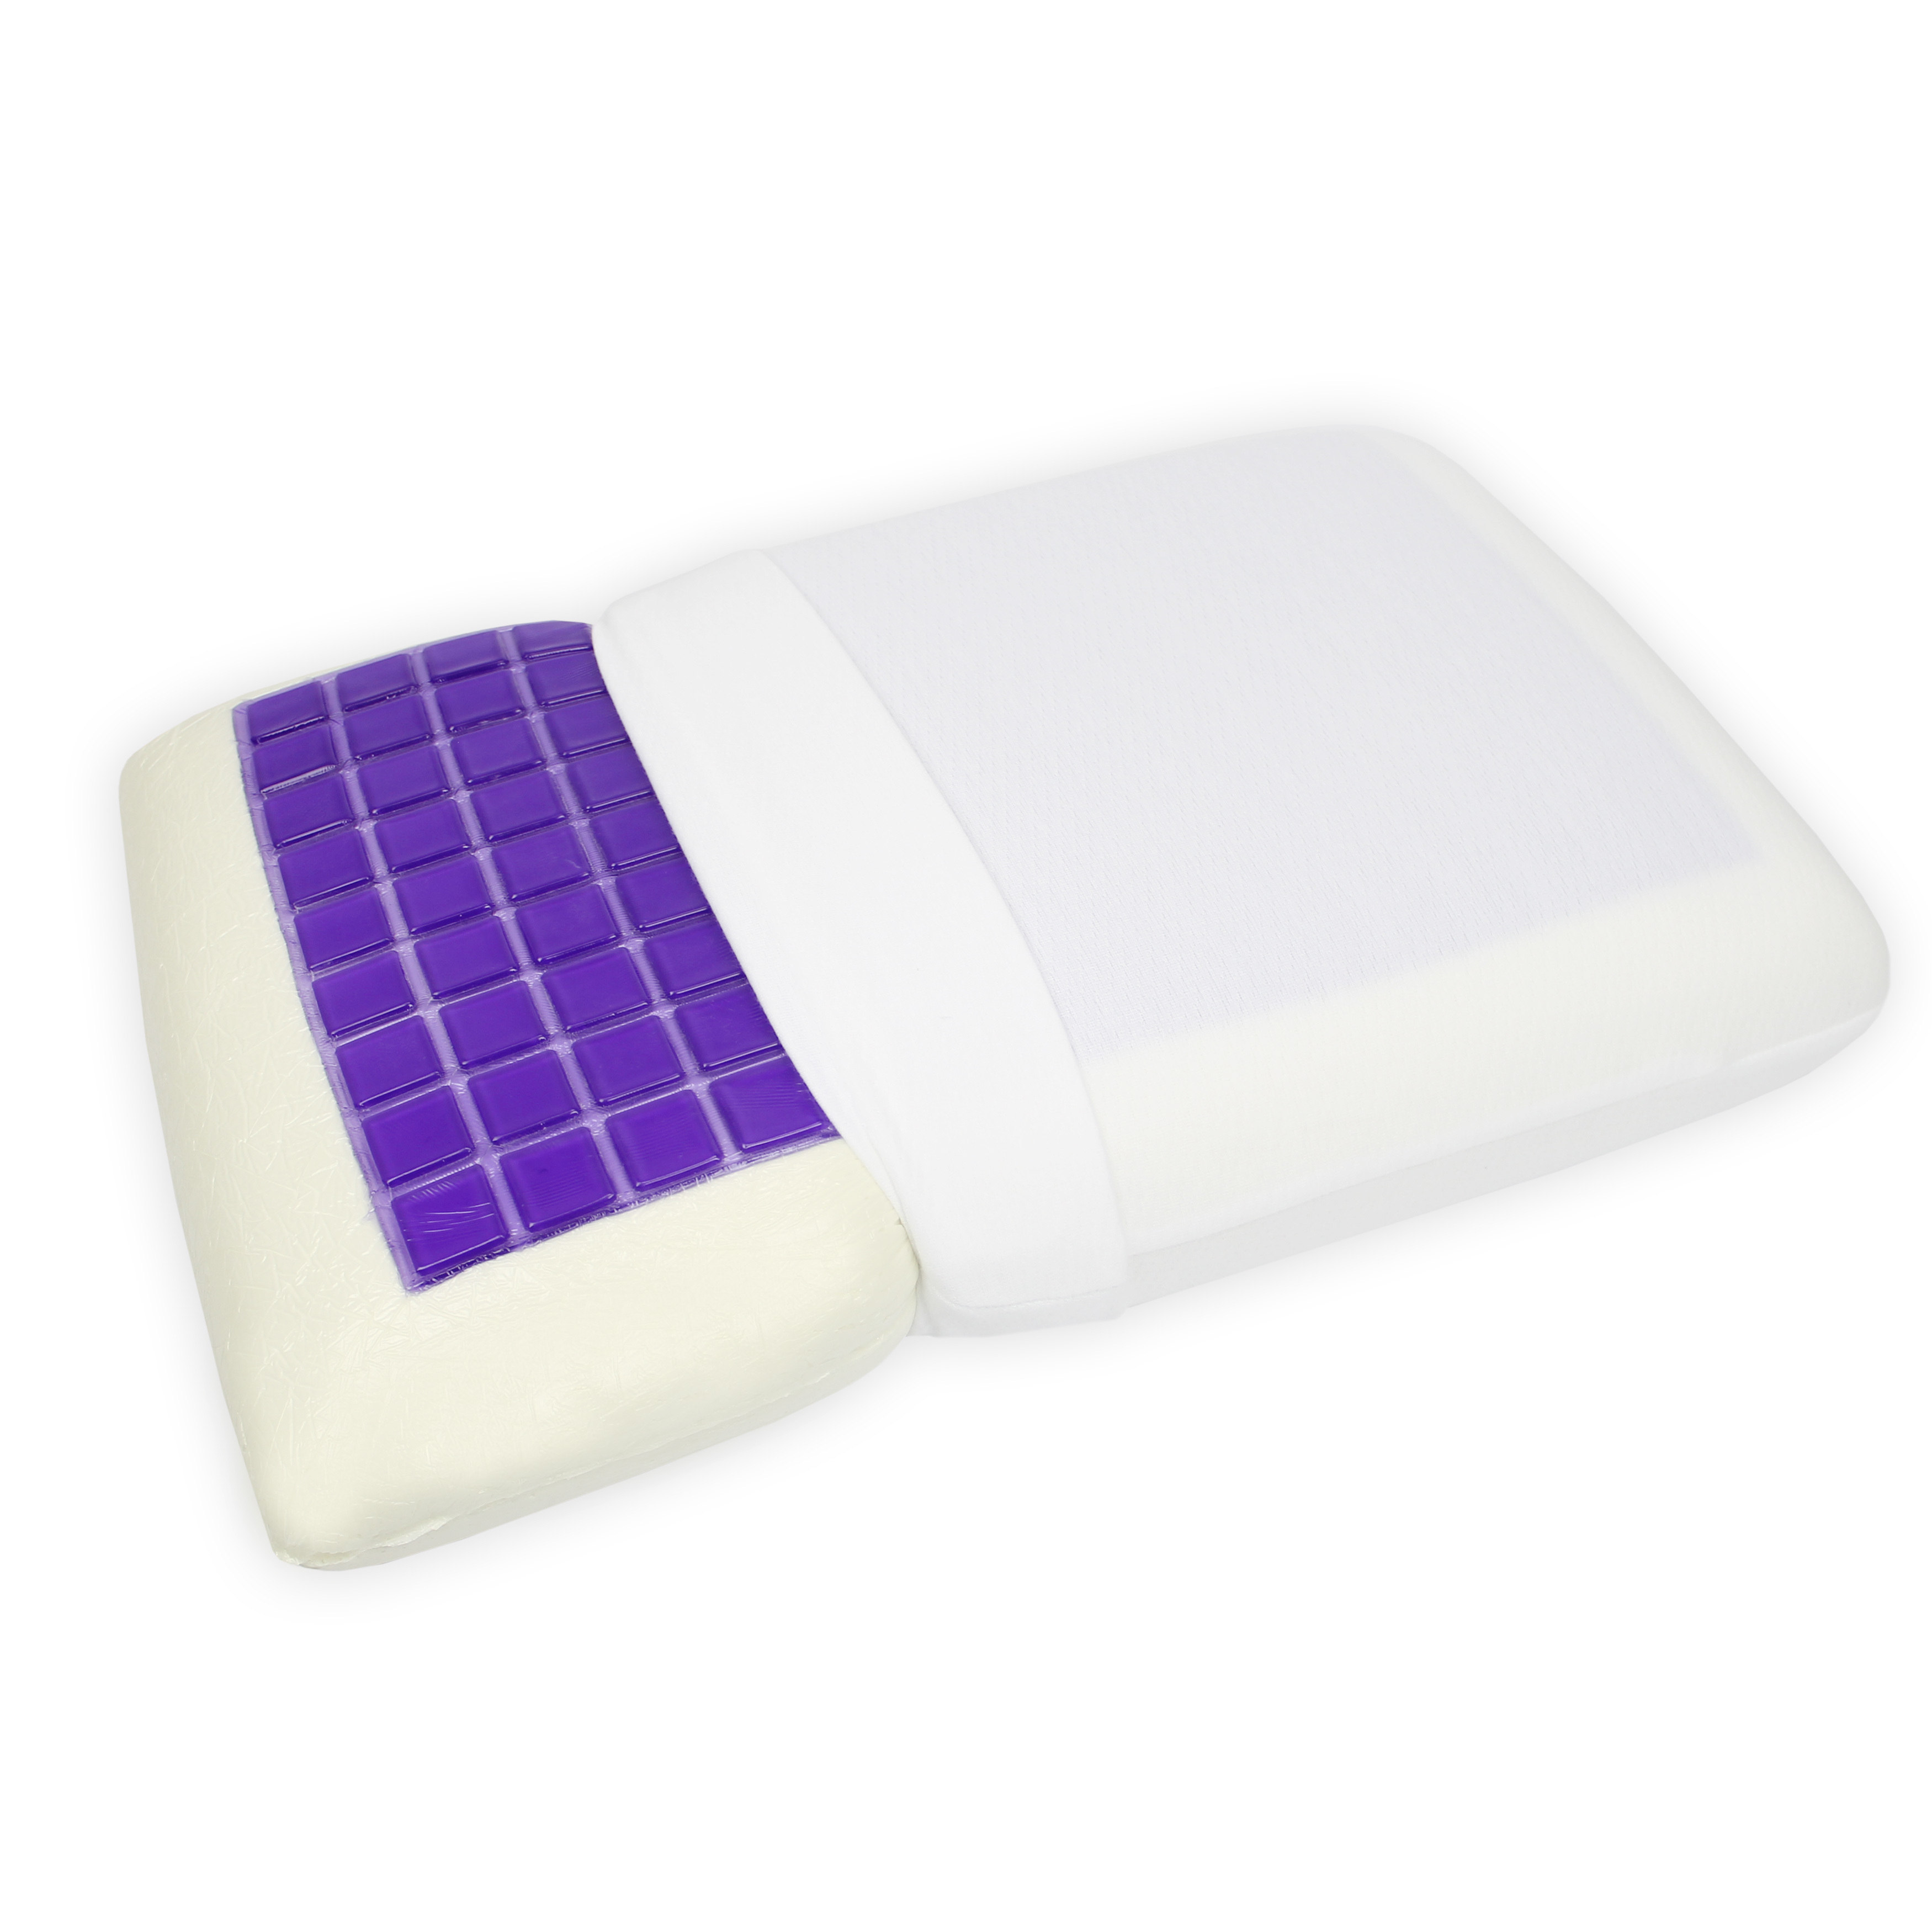 Signature Collection Cooling Gel Layer Memory Foam Pillow